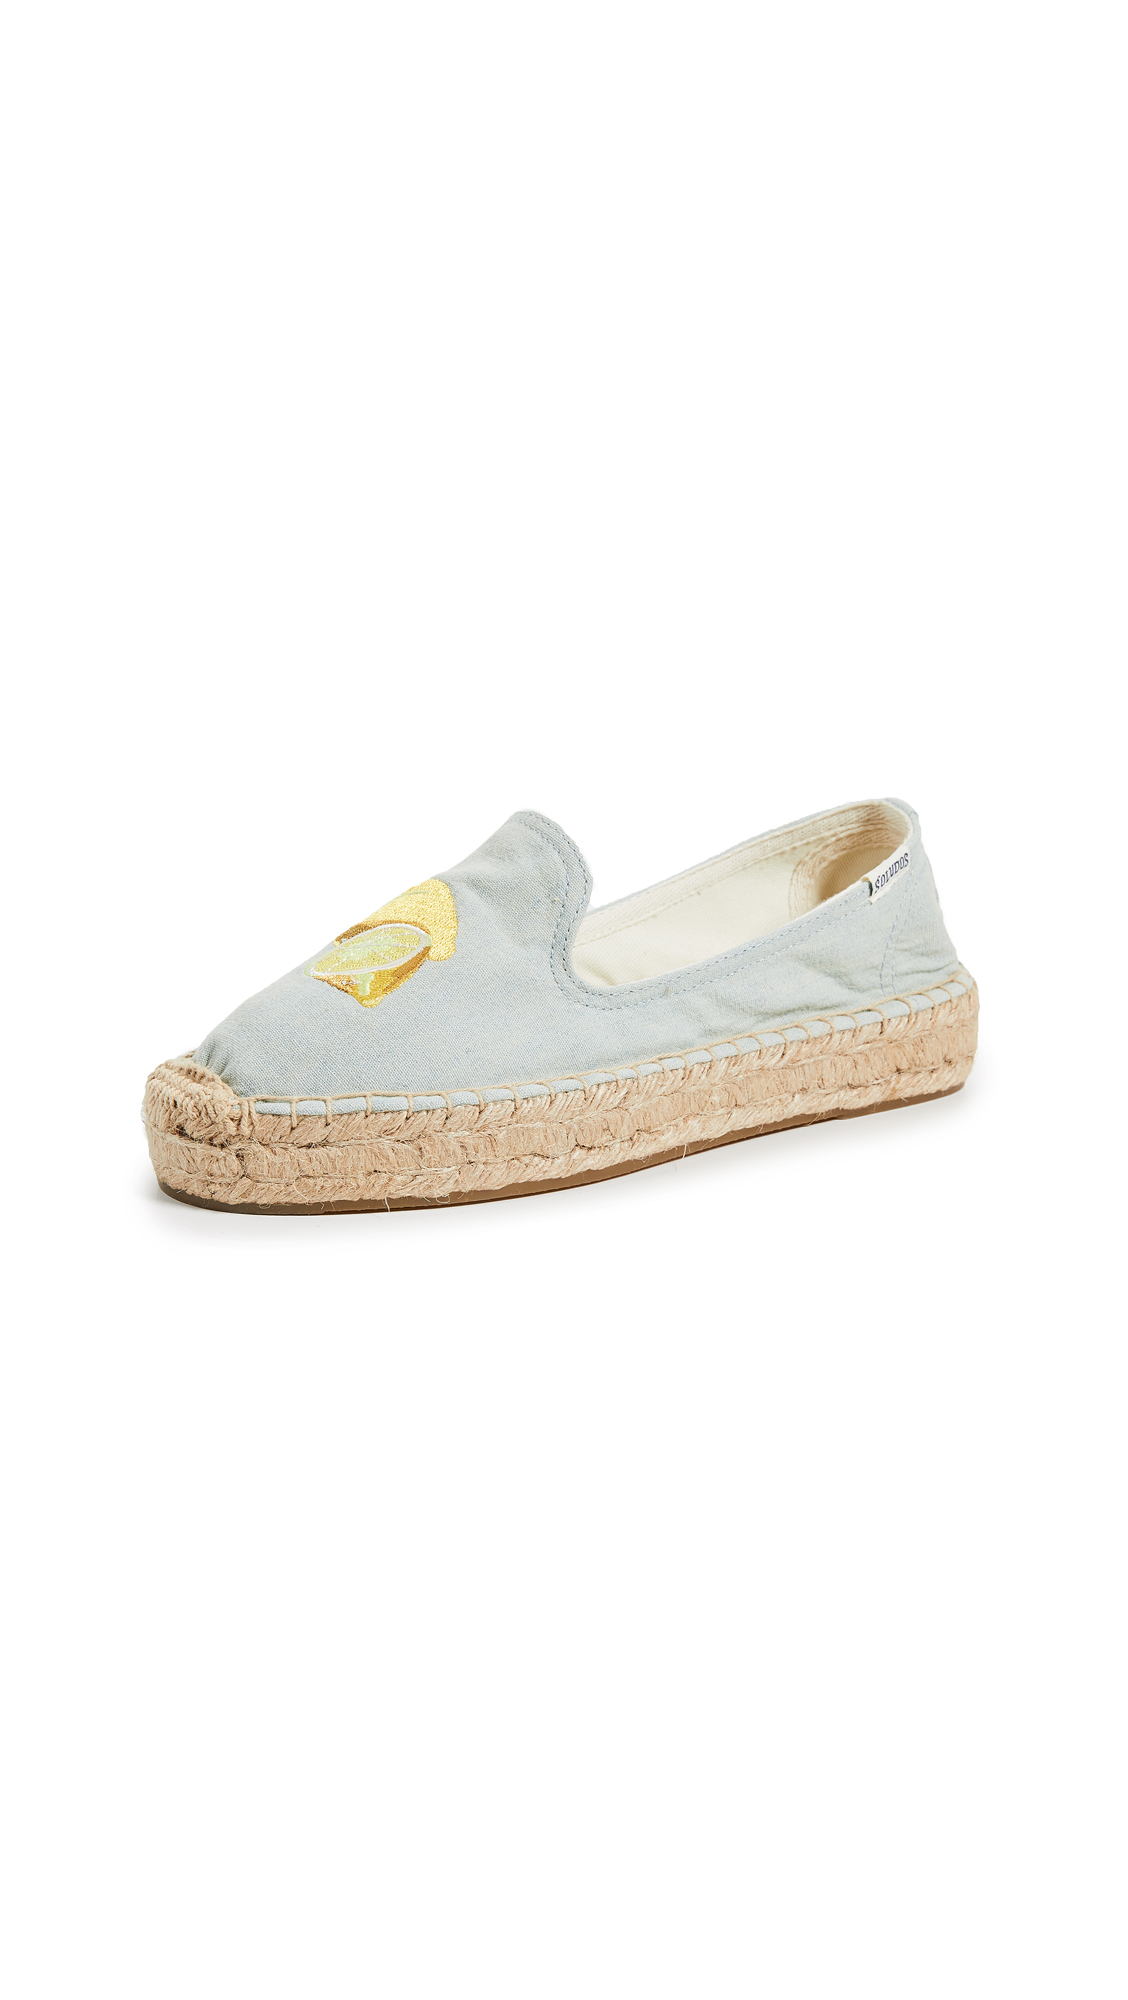 Soludos Lemons Smoking Slippers - Chambray